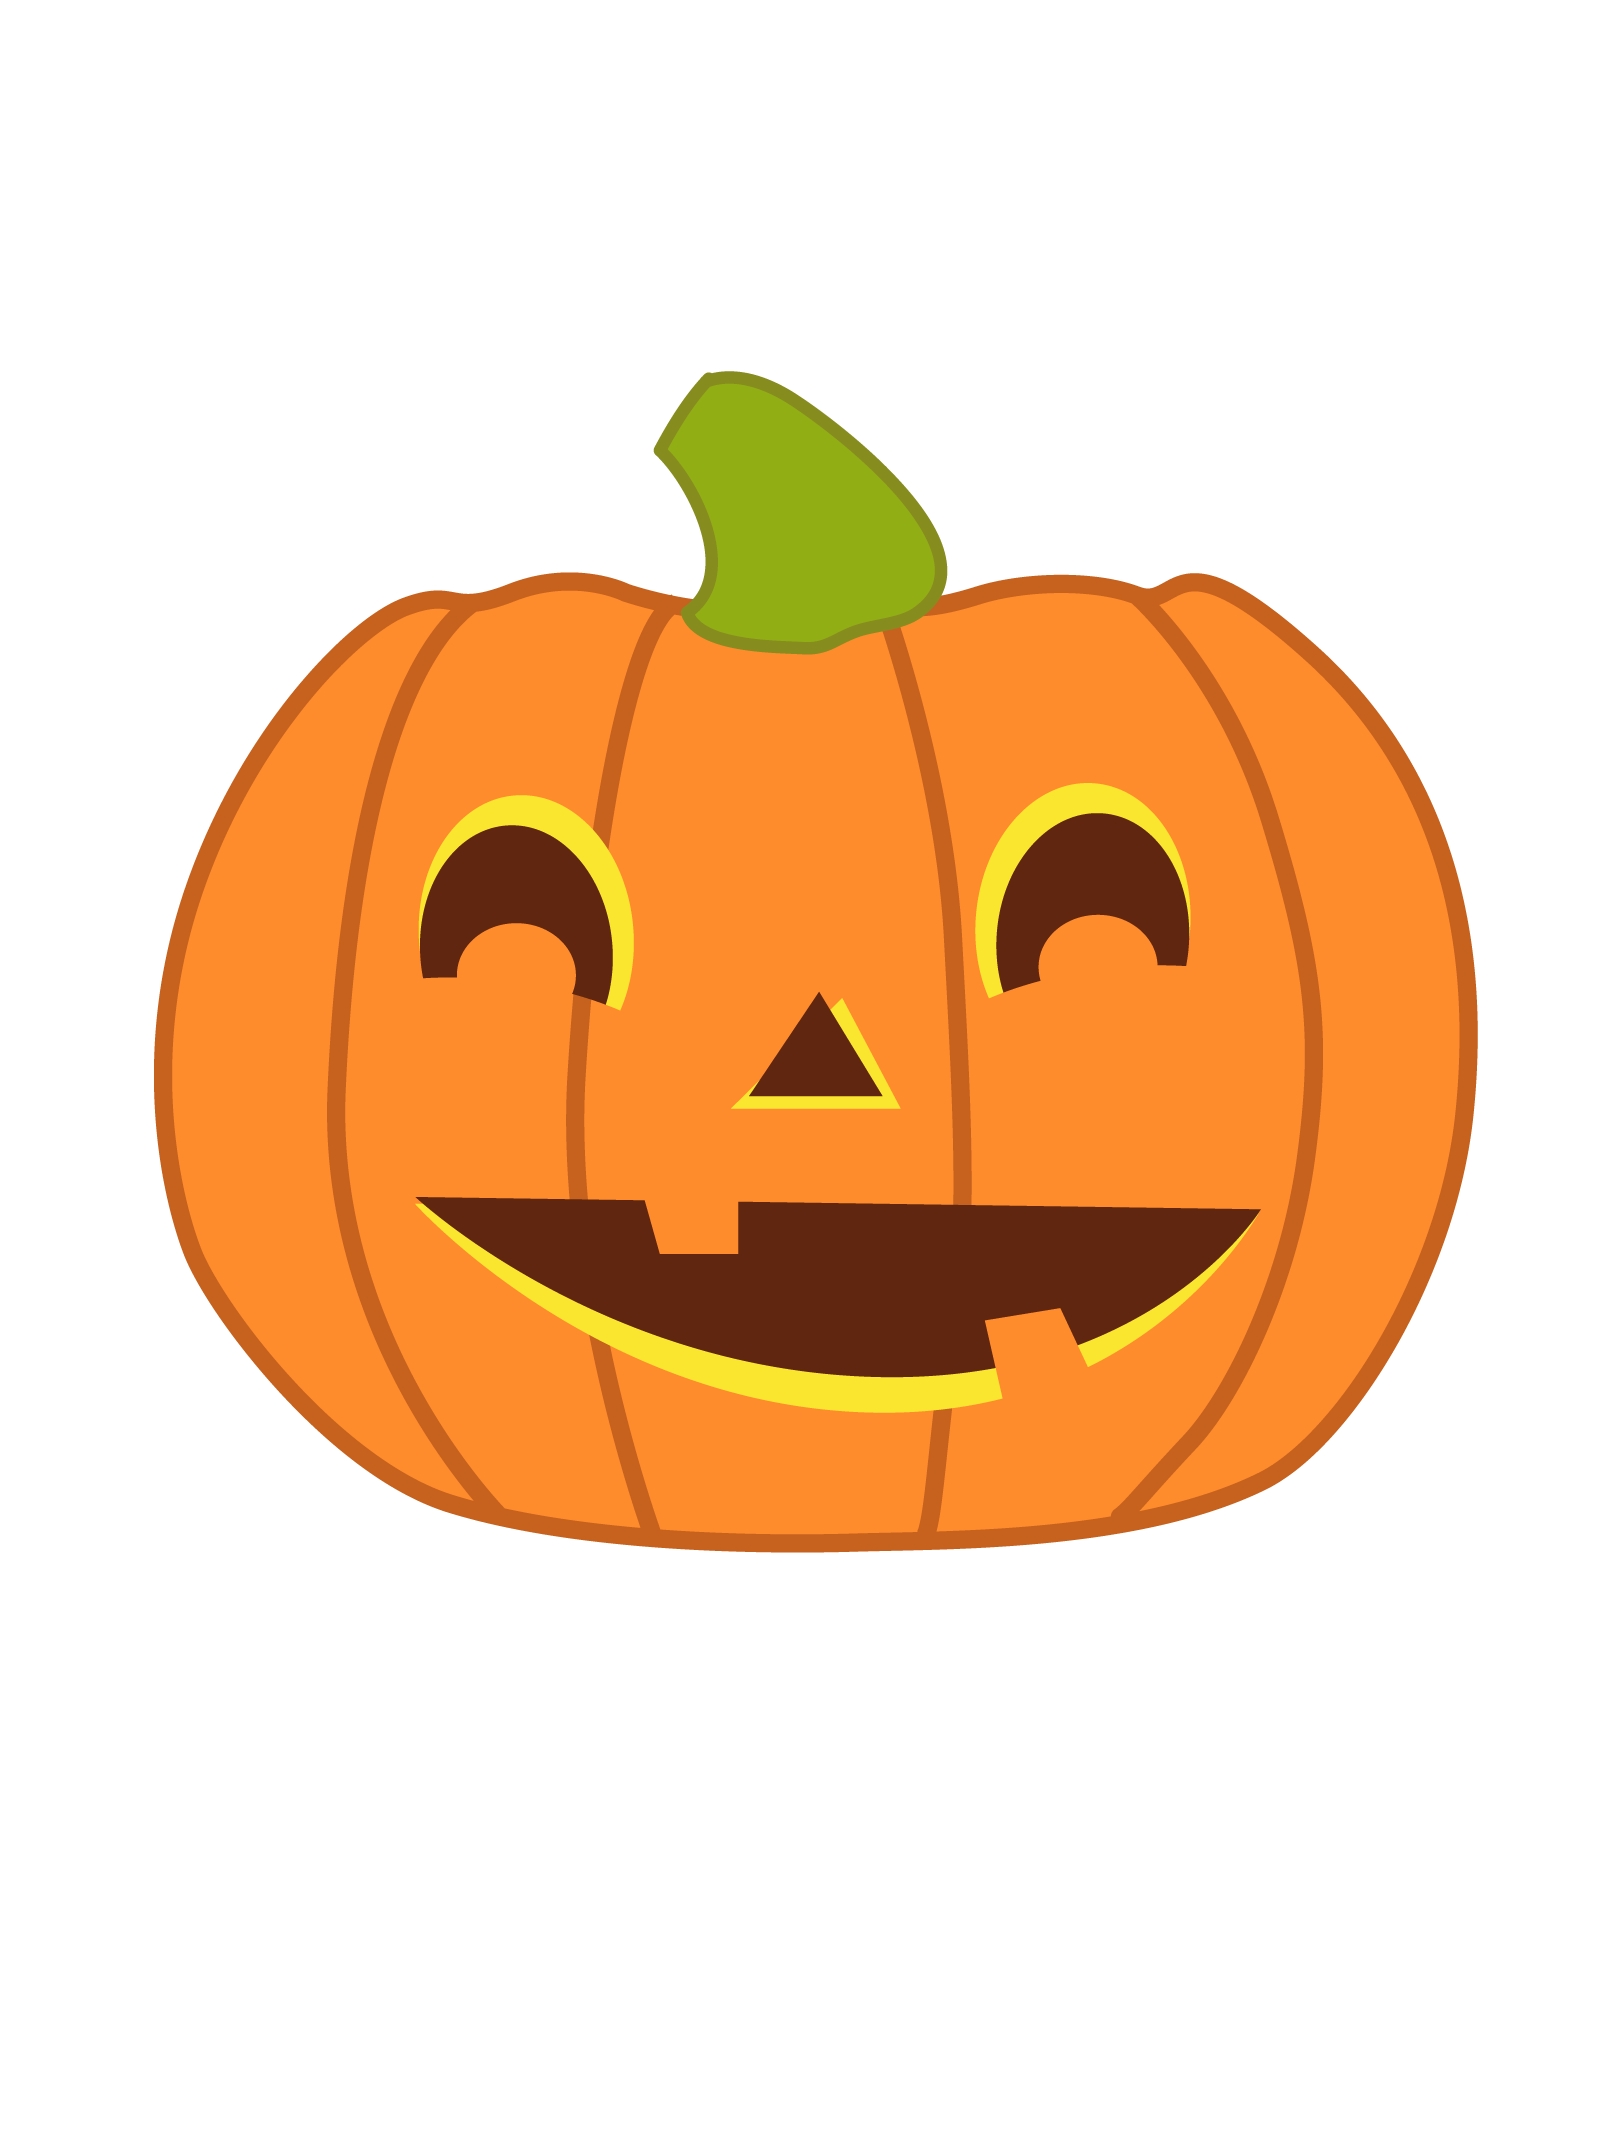 October clipart pumpkin. Image black and white